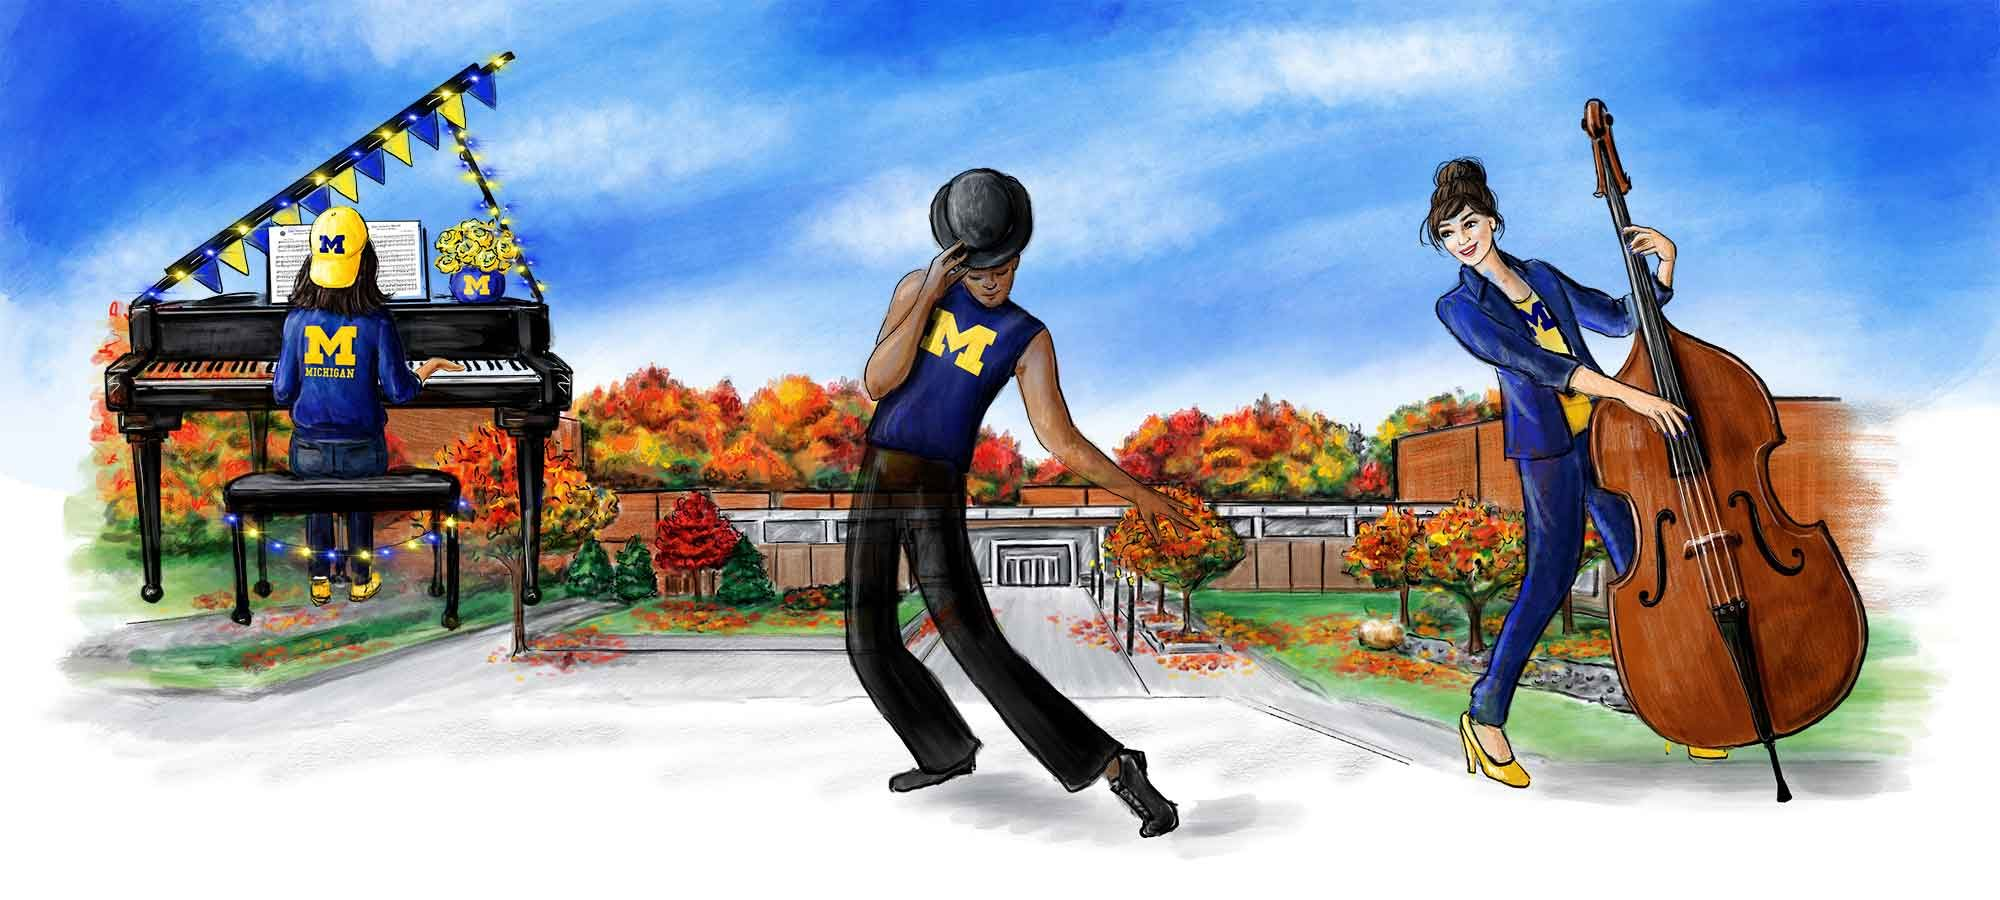 Meghann Powell illustration of Moore Building, with pianist, dancer and bass player wearing University of Michigan logo clothing